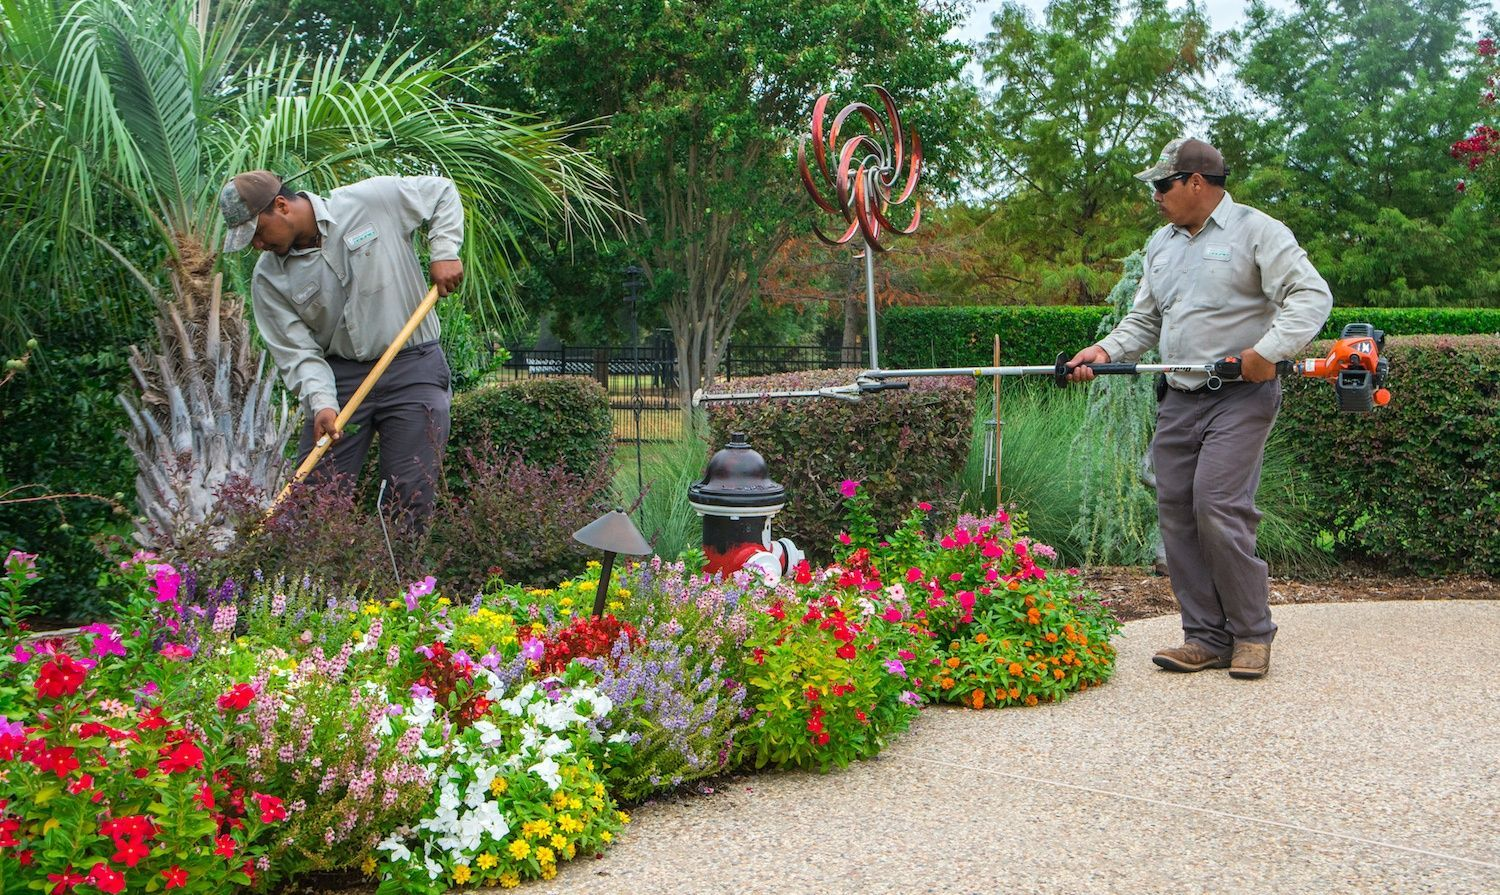 Landscaping Company How To Find The Best Landscaping Company To Work For